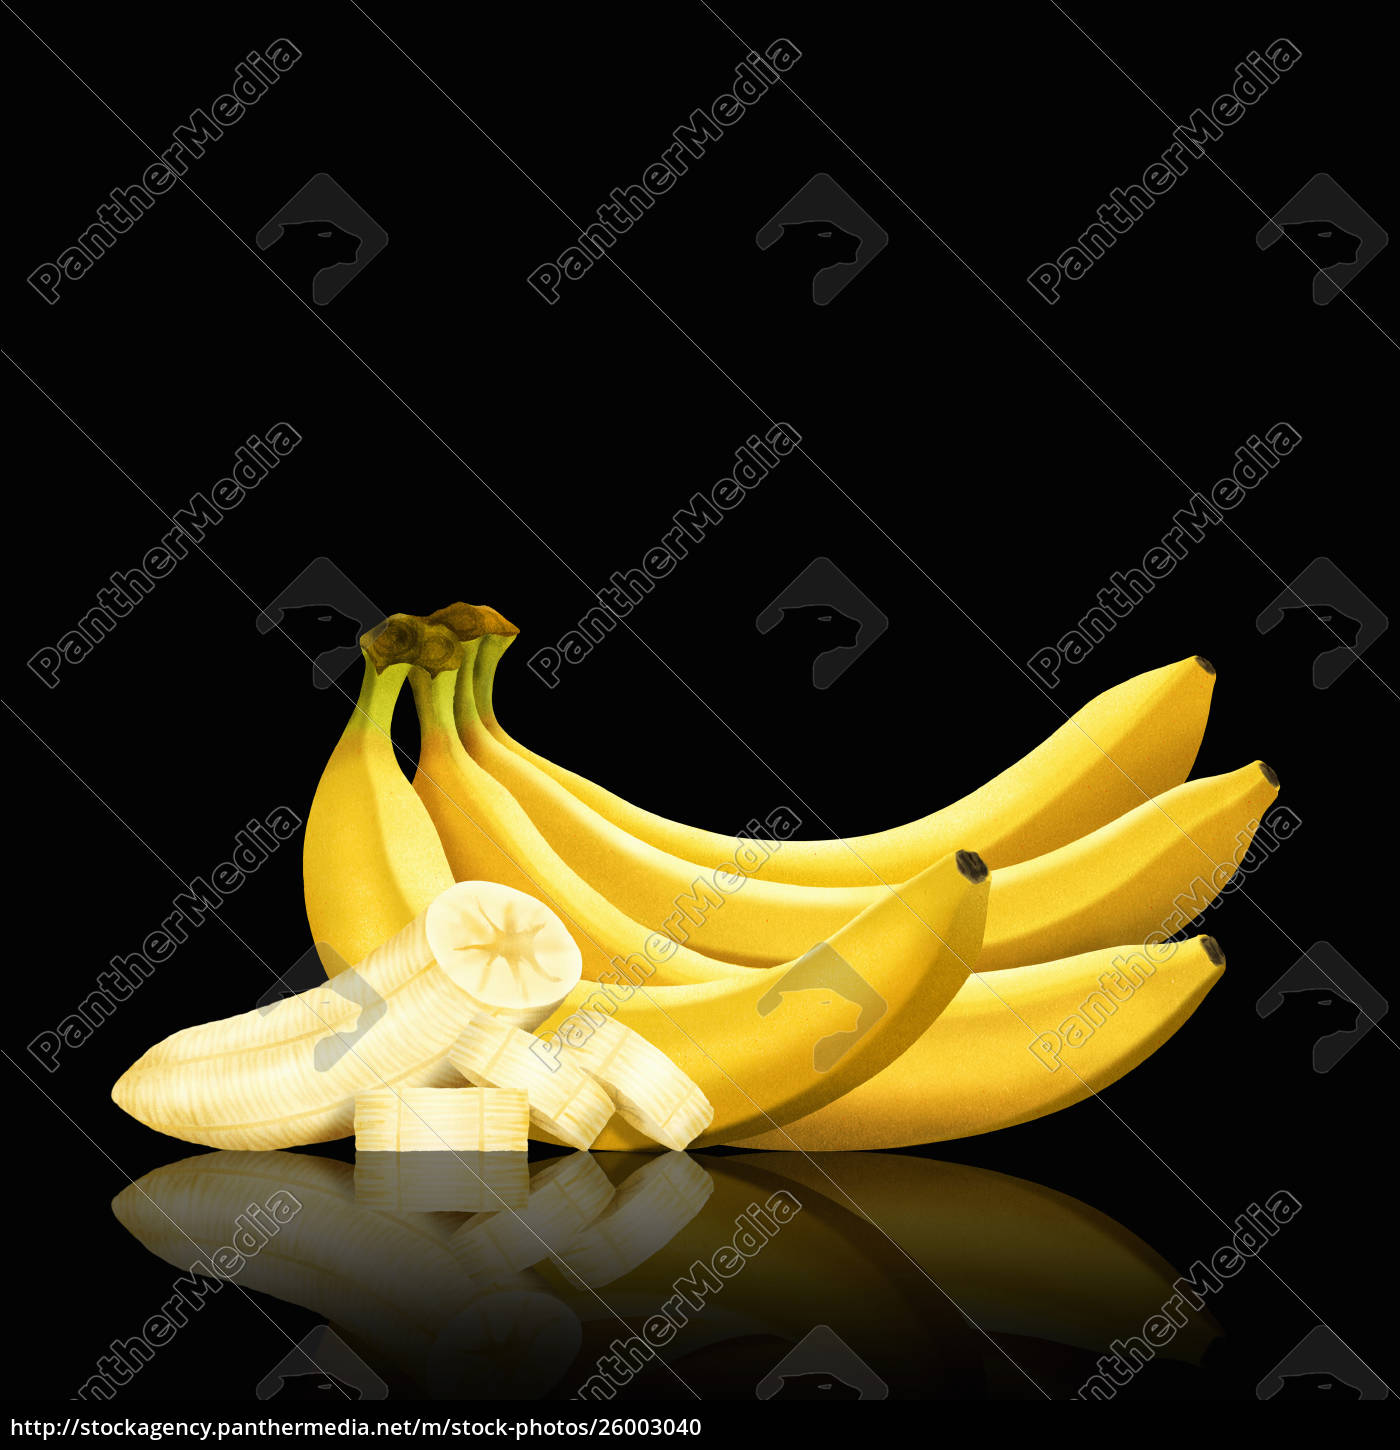 bunch, of, bananas, and, slices, of - 26003040